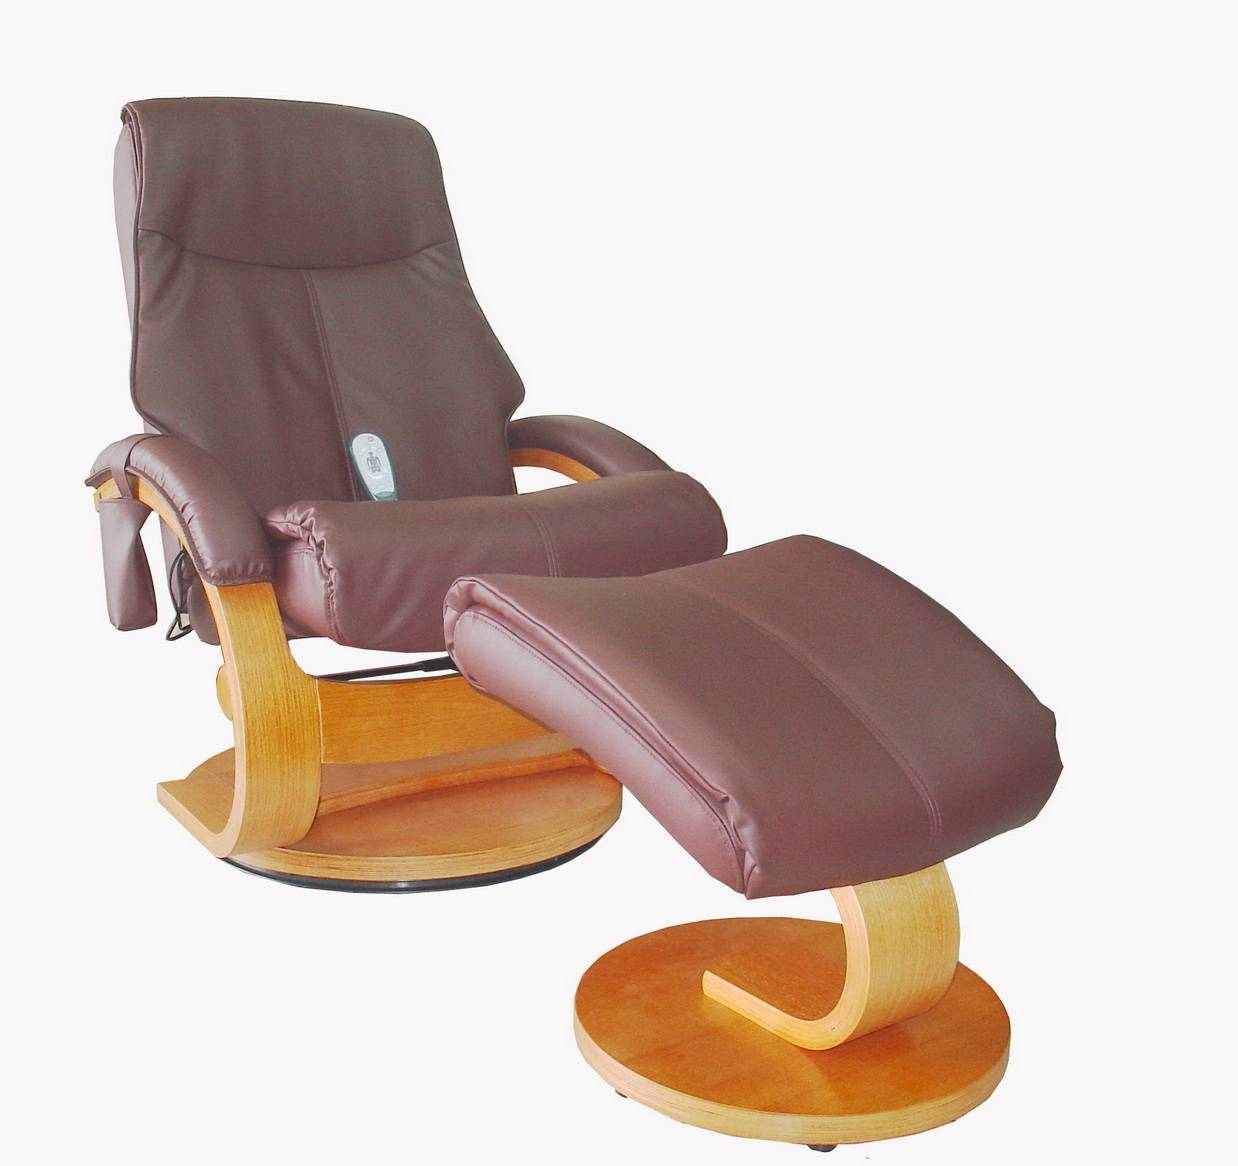 BH-8172-3 Robotic Massage Recliner Chair, Home Furniture